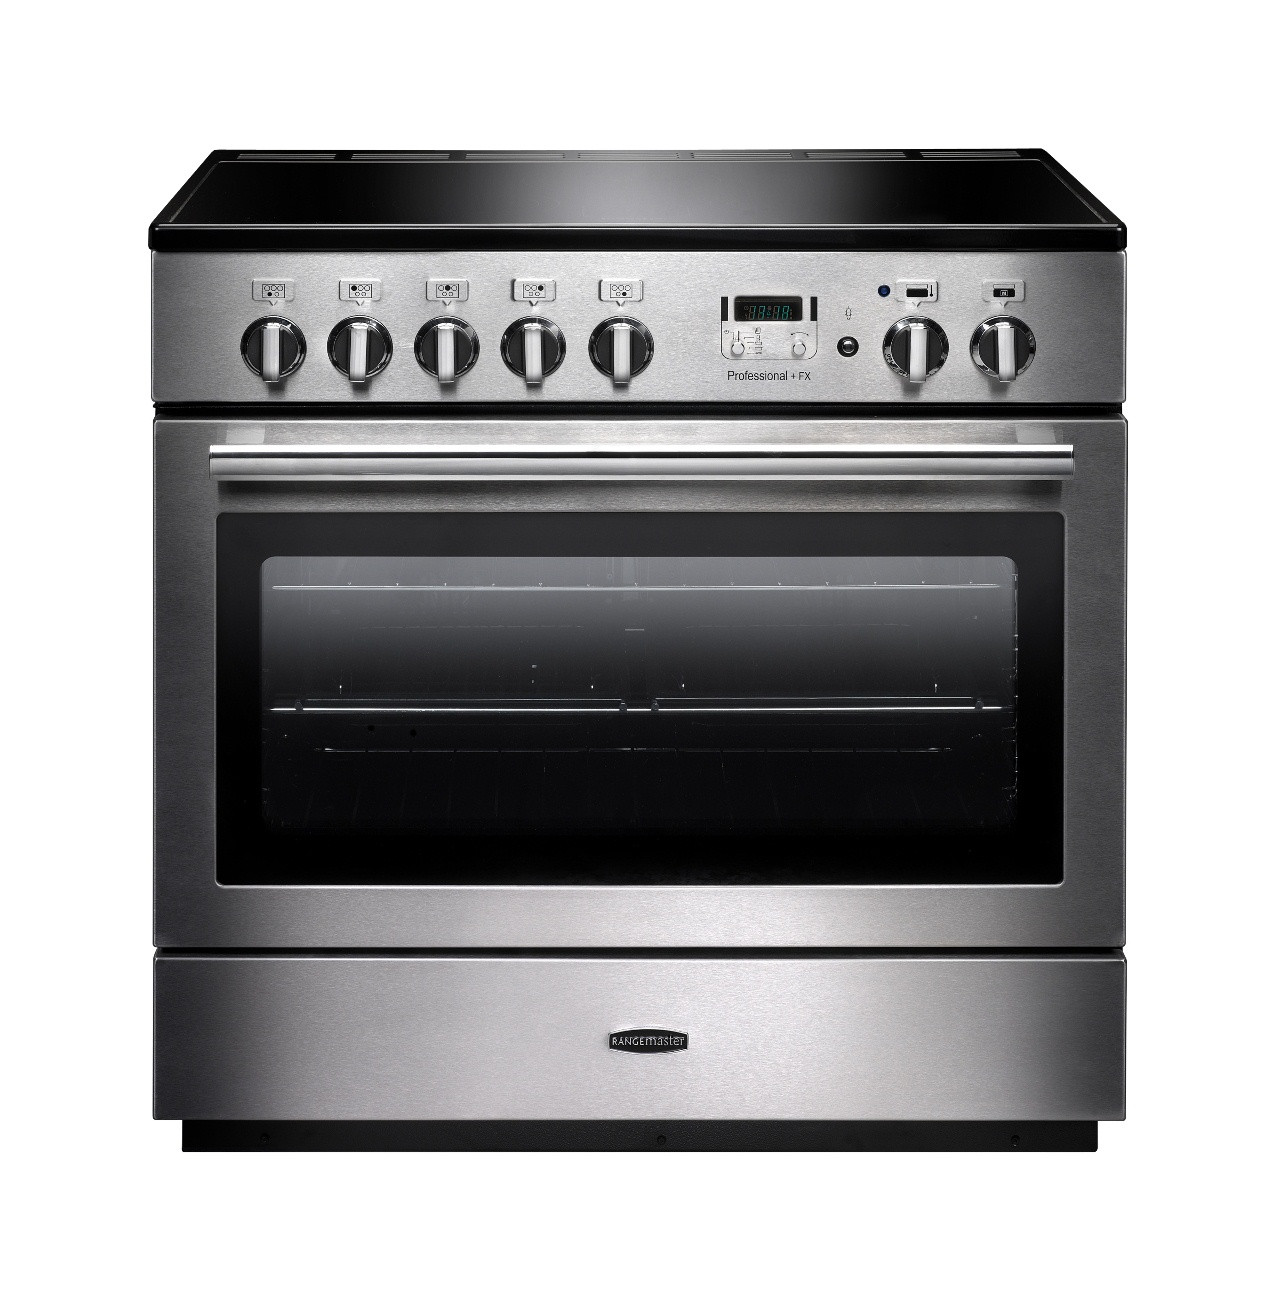 Rangemaster Professional Plus FX 90 Induction Stainless Steel Range Cooker PROP90FXEISS/C 96300